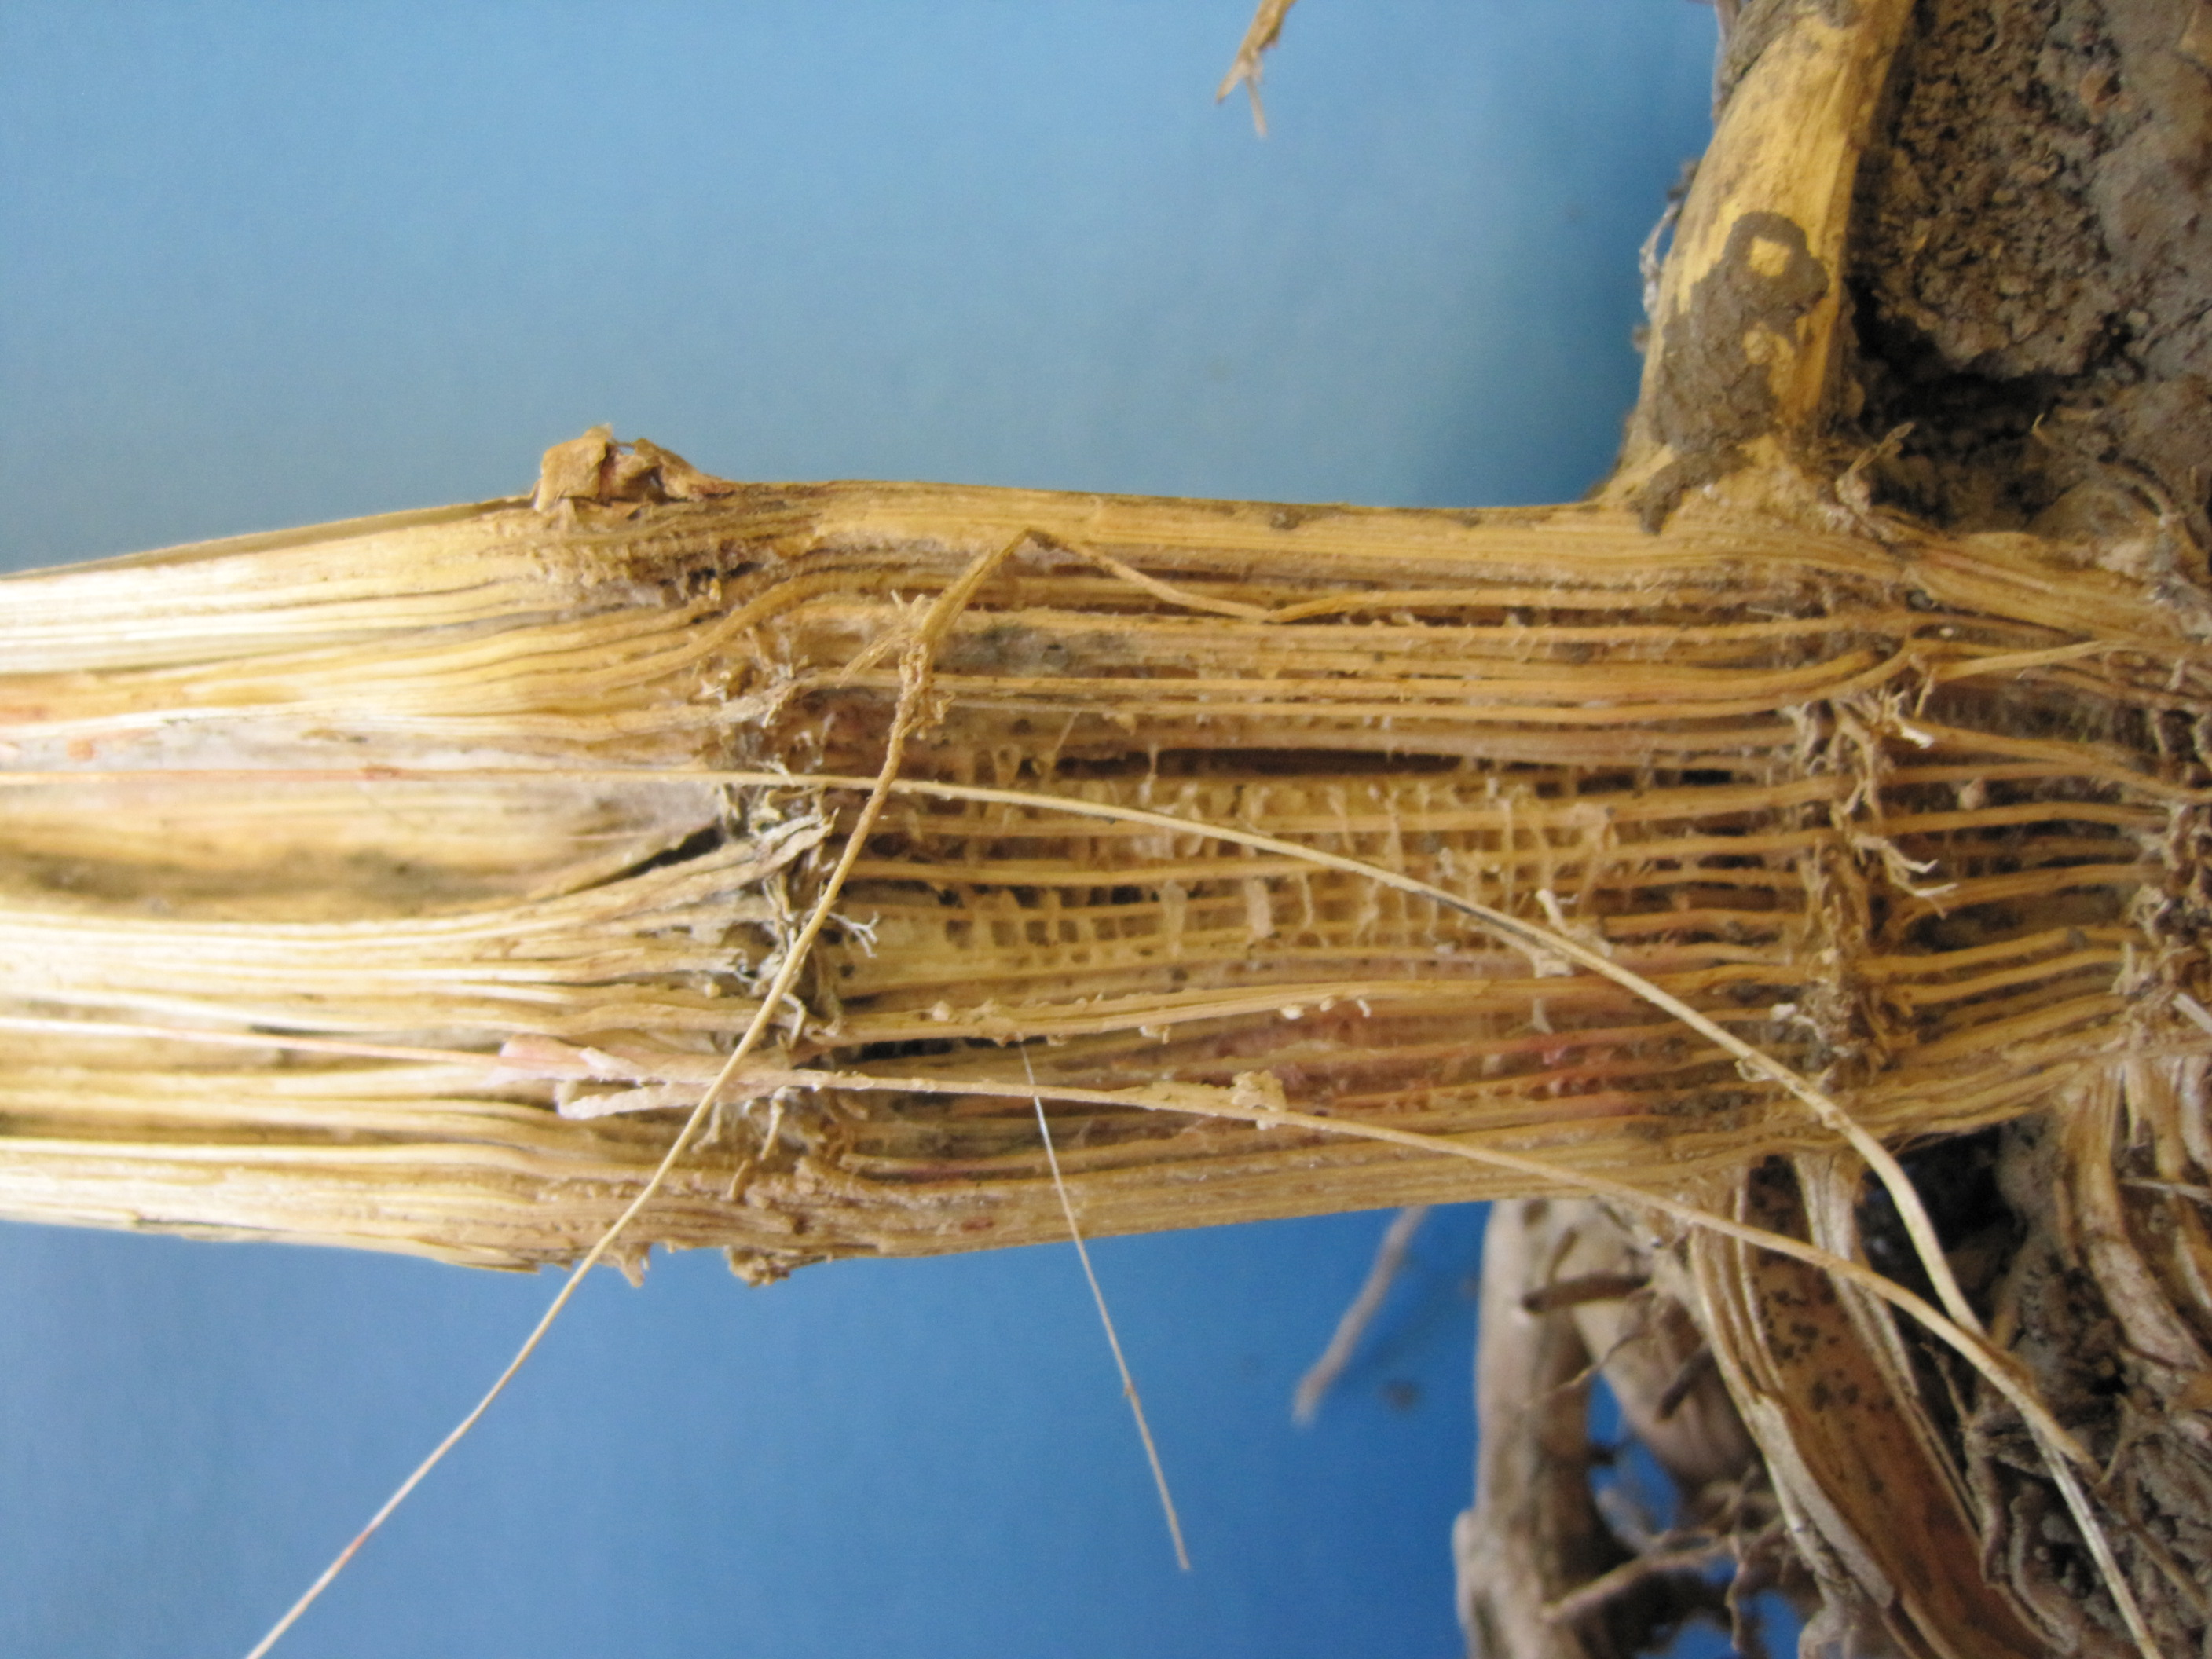 Fusarium stalk rot can cause shredded pith that may be a whitish-pink to salmon color.